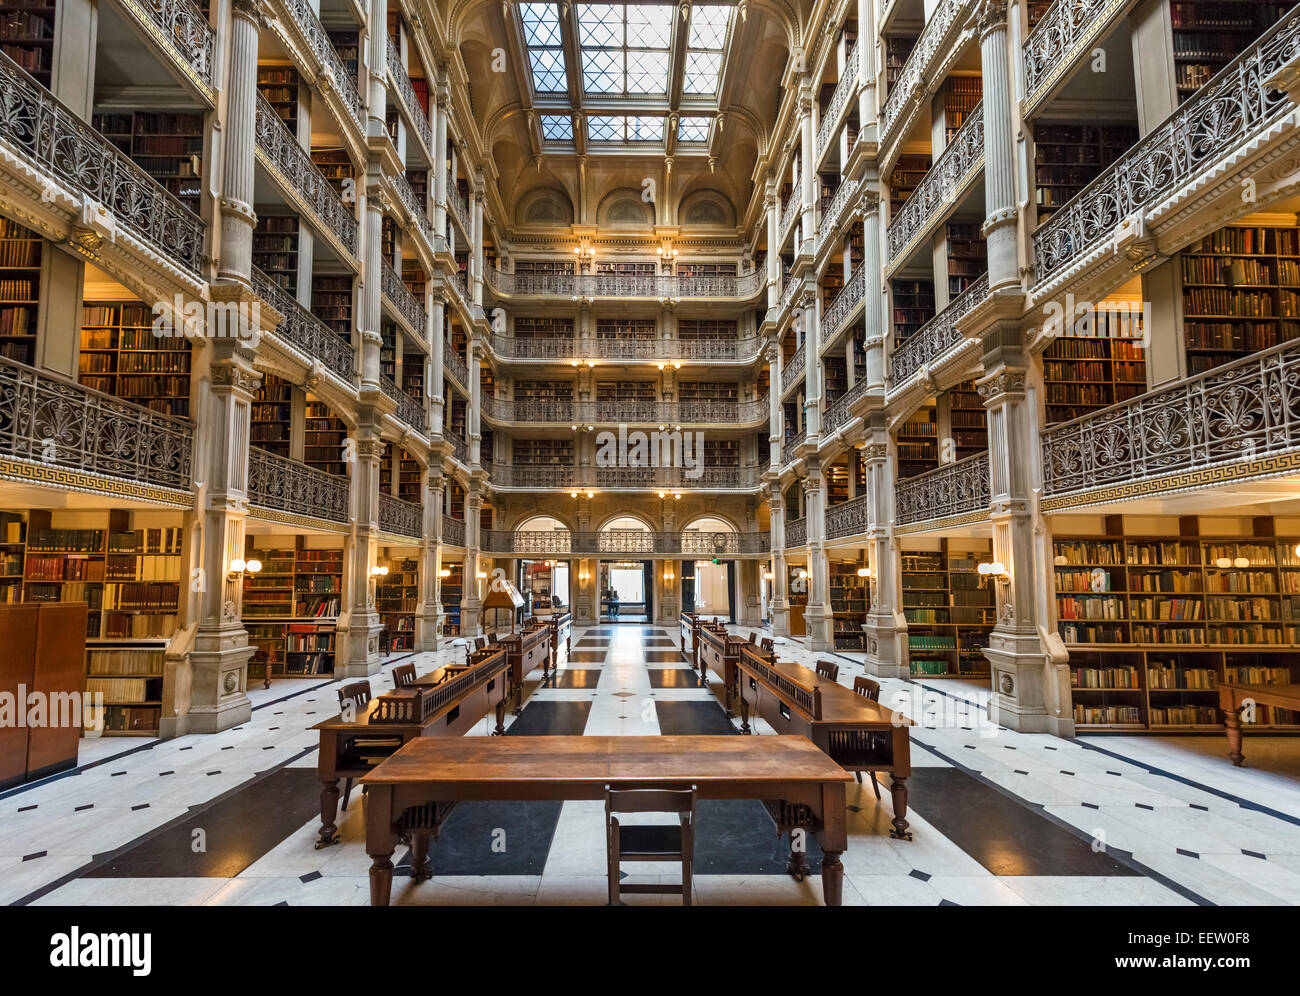 Interior of the 19thC George Peabody Library, Peabody Institute, Johns Hopkins University, Baltimore, Maryland, - Stock Image